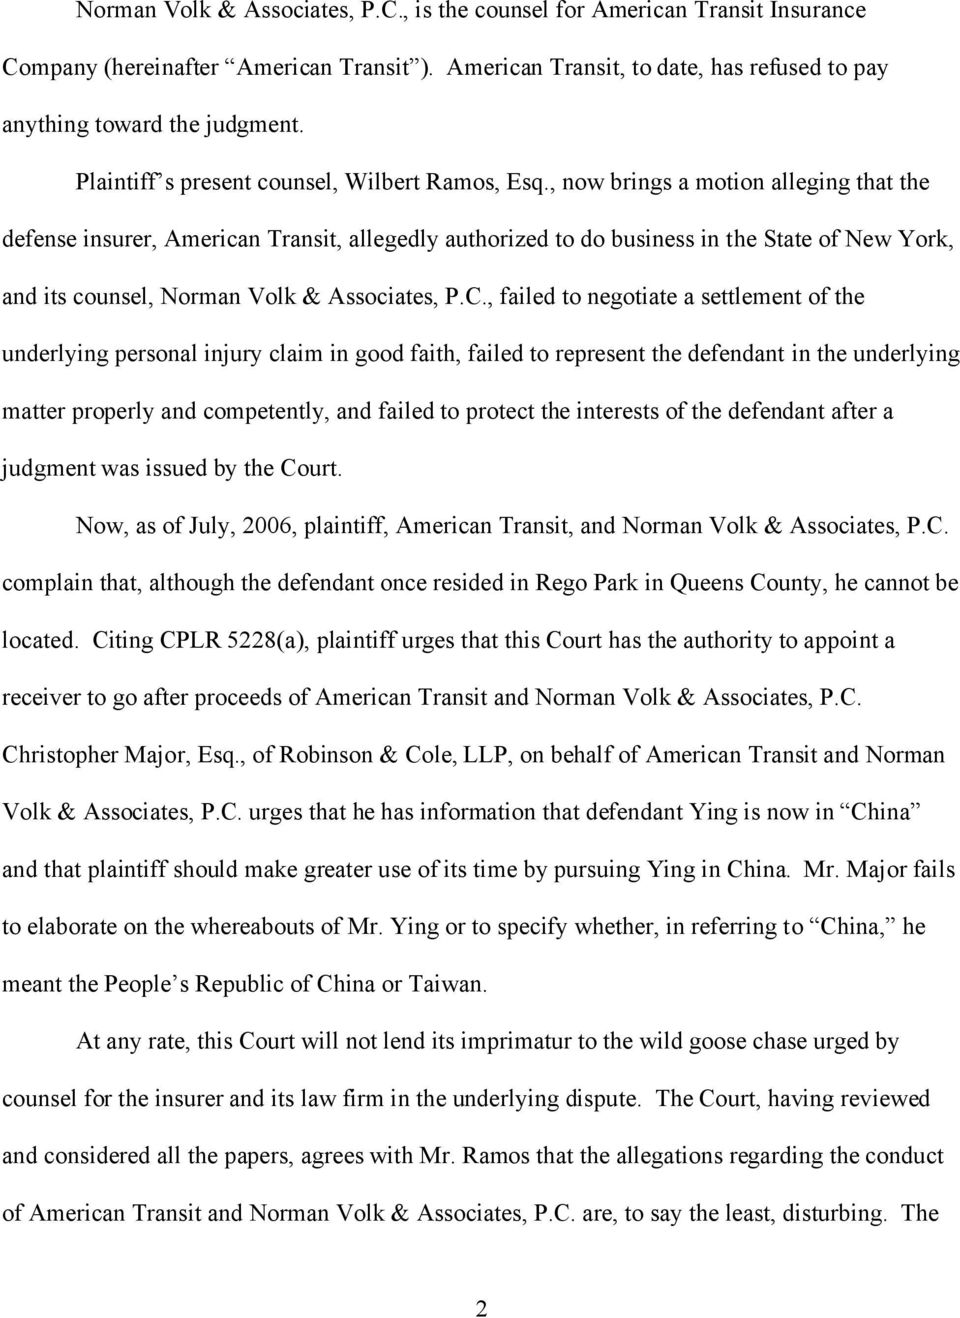 , now brings a motion alleging that the defense insurer, American Transit, allegedly authorized to do business in the State of New York, and its counsel, Norman Volk & Associates, P.C.